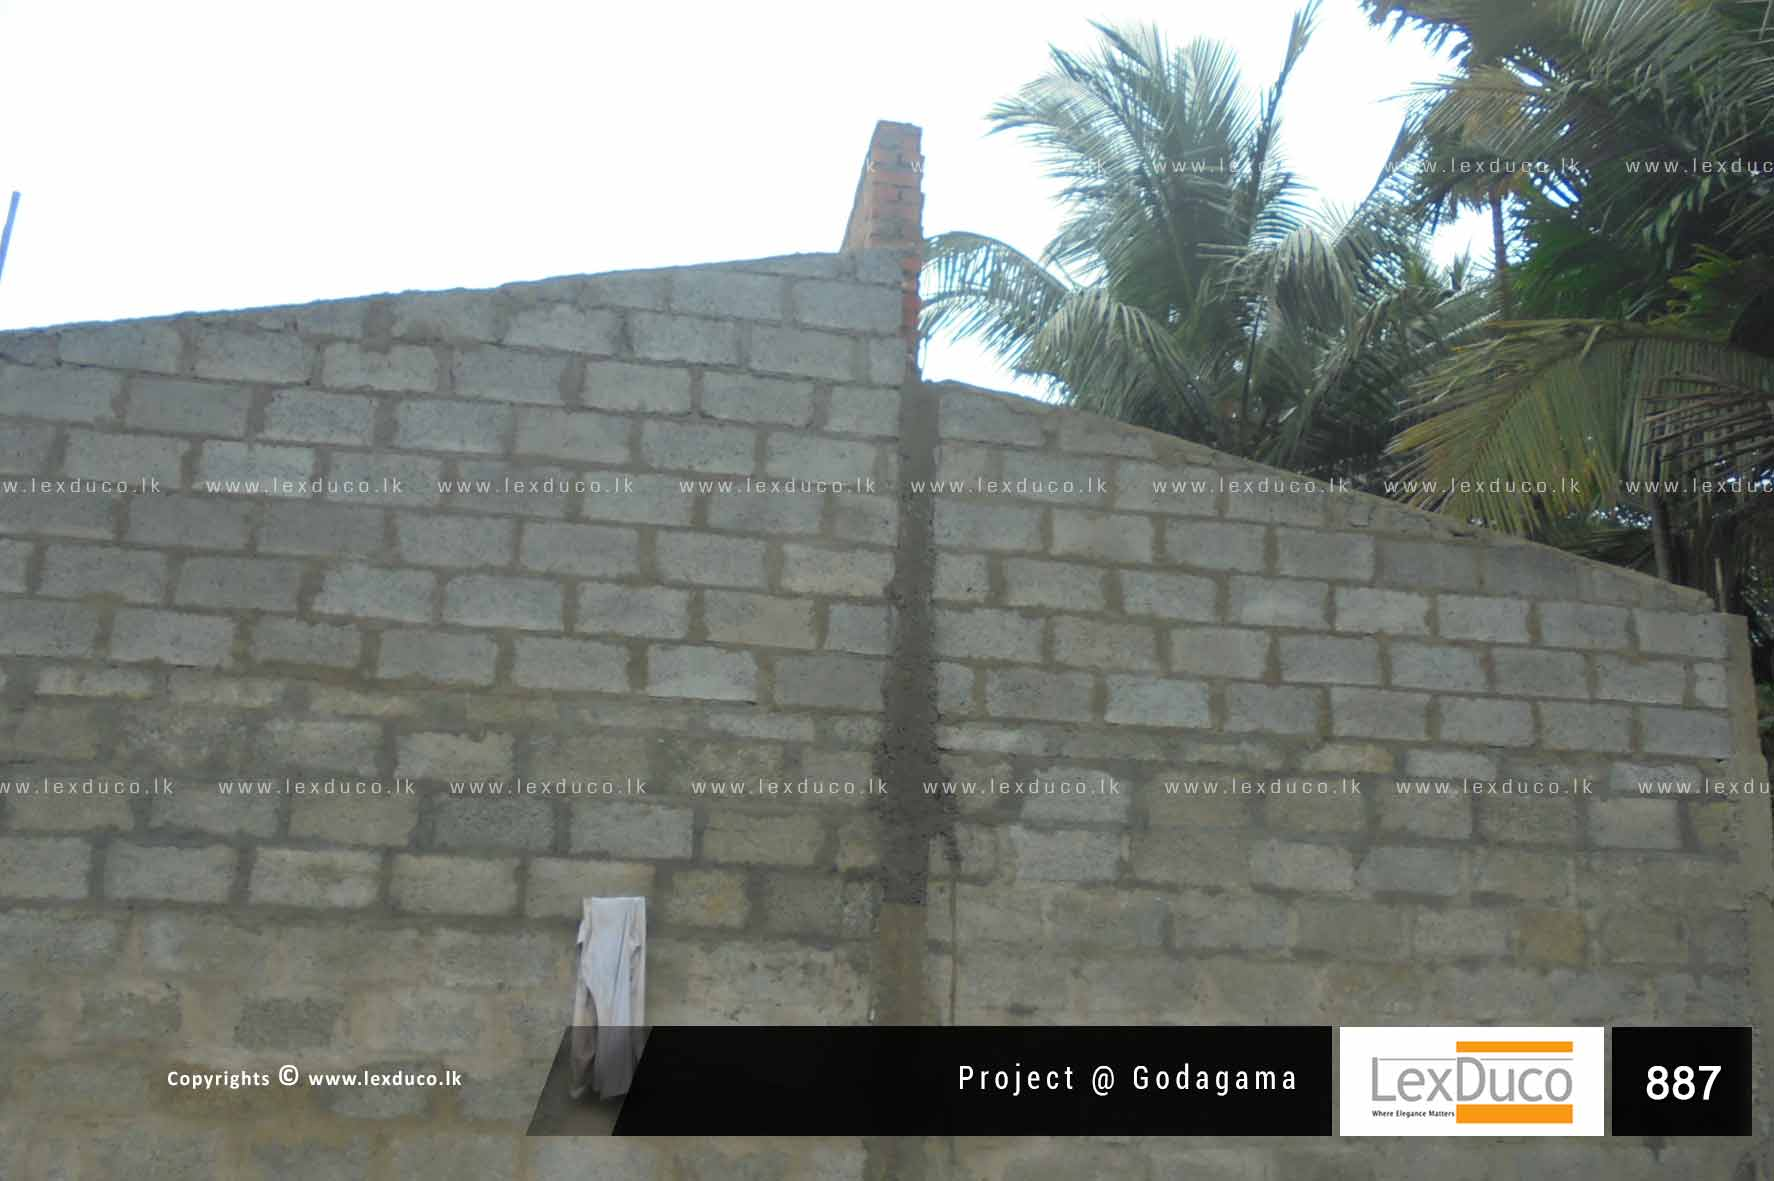 Residential Housing Project at Godagama | Lex Duco